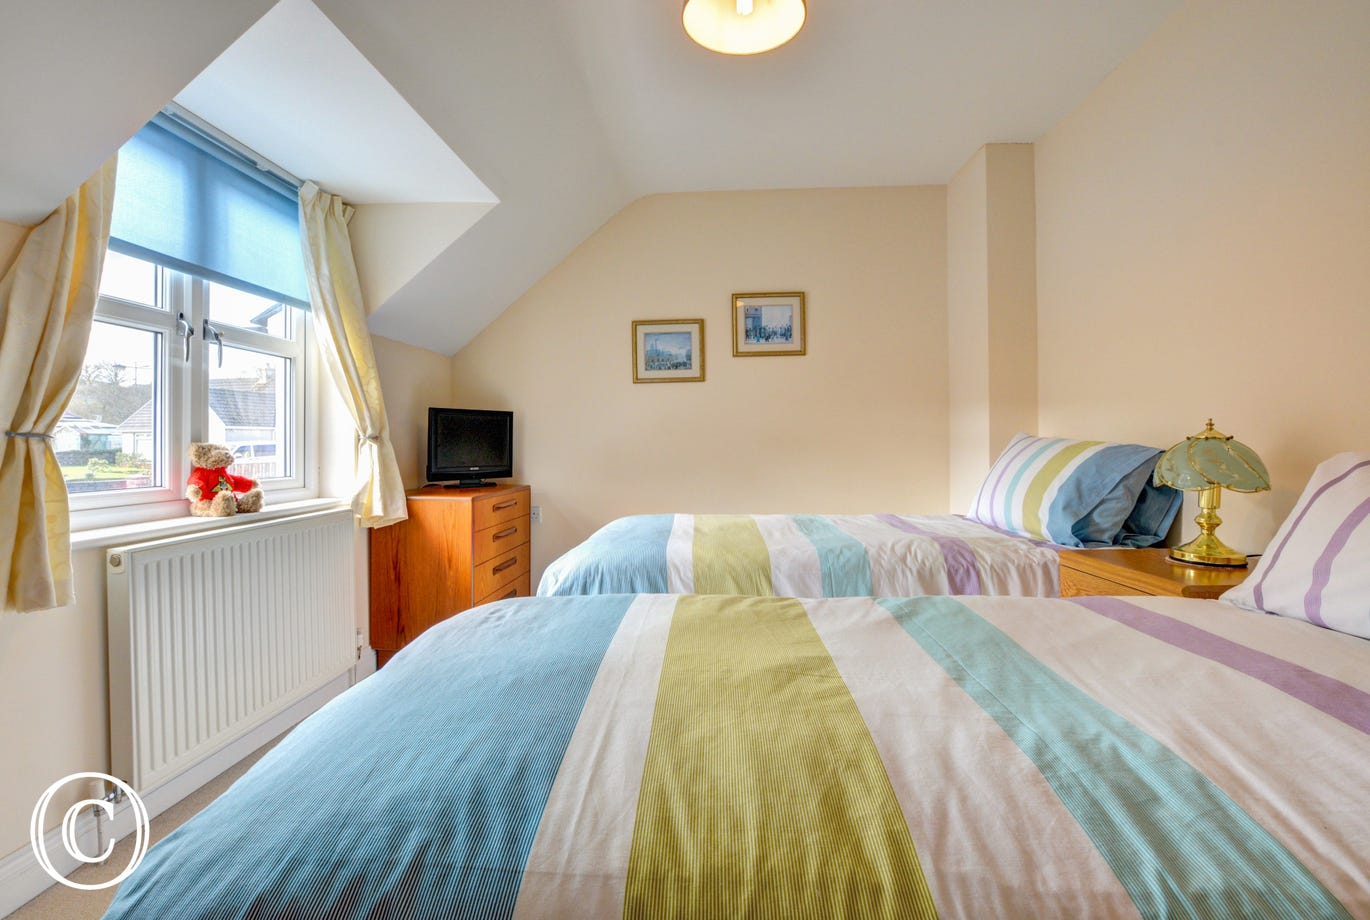 This holiday accommodation provides a twin bedded room